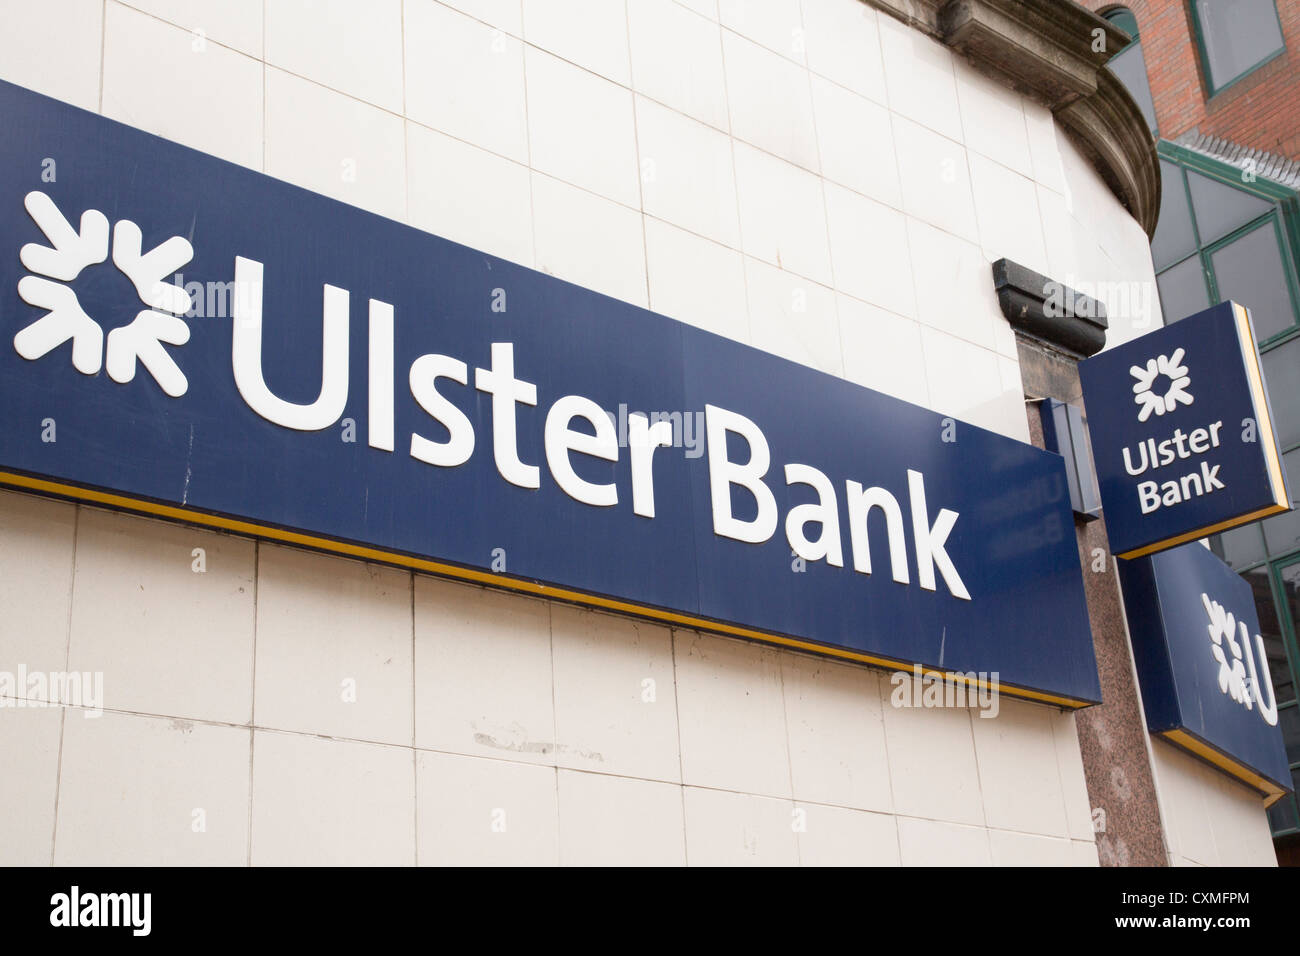 Ulster Bank sign with RBS logo in the city centre of Belfast, County Antrim, Northern Ireland, UK - Stock Image